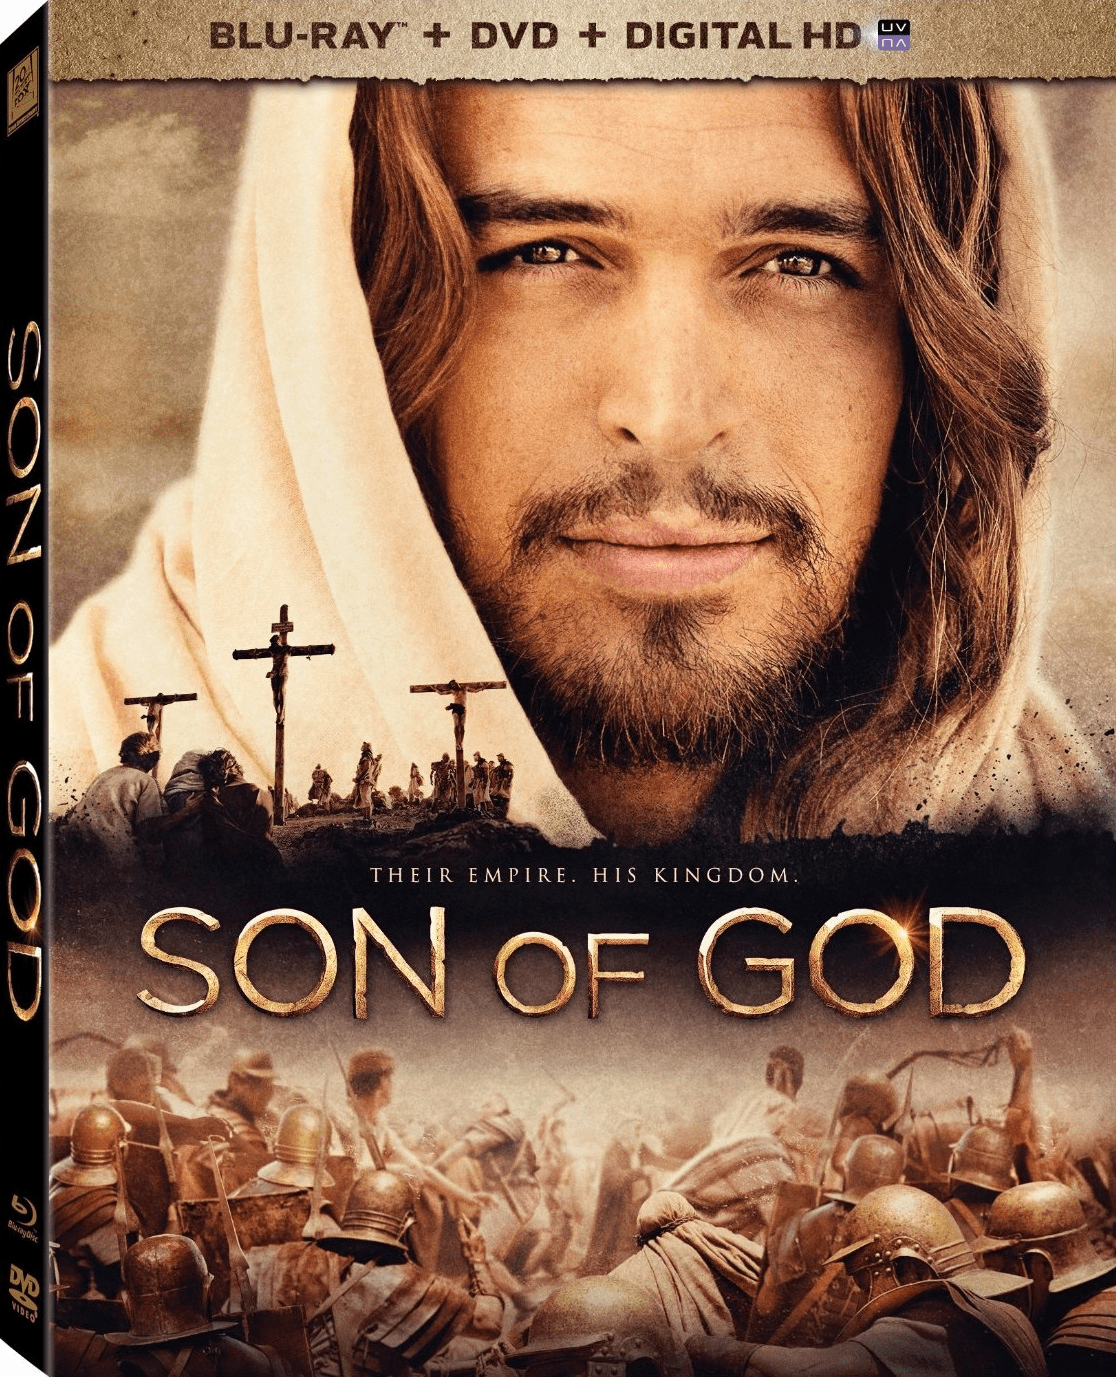 Son Of God (Blu-ray + DVD + Digital HD)